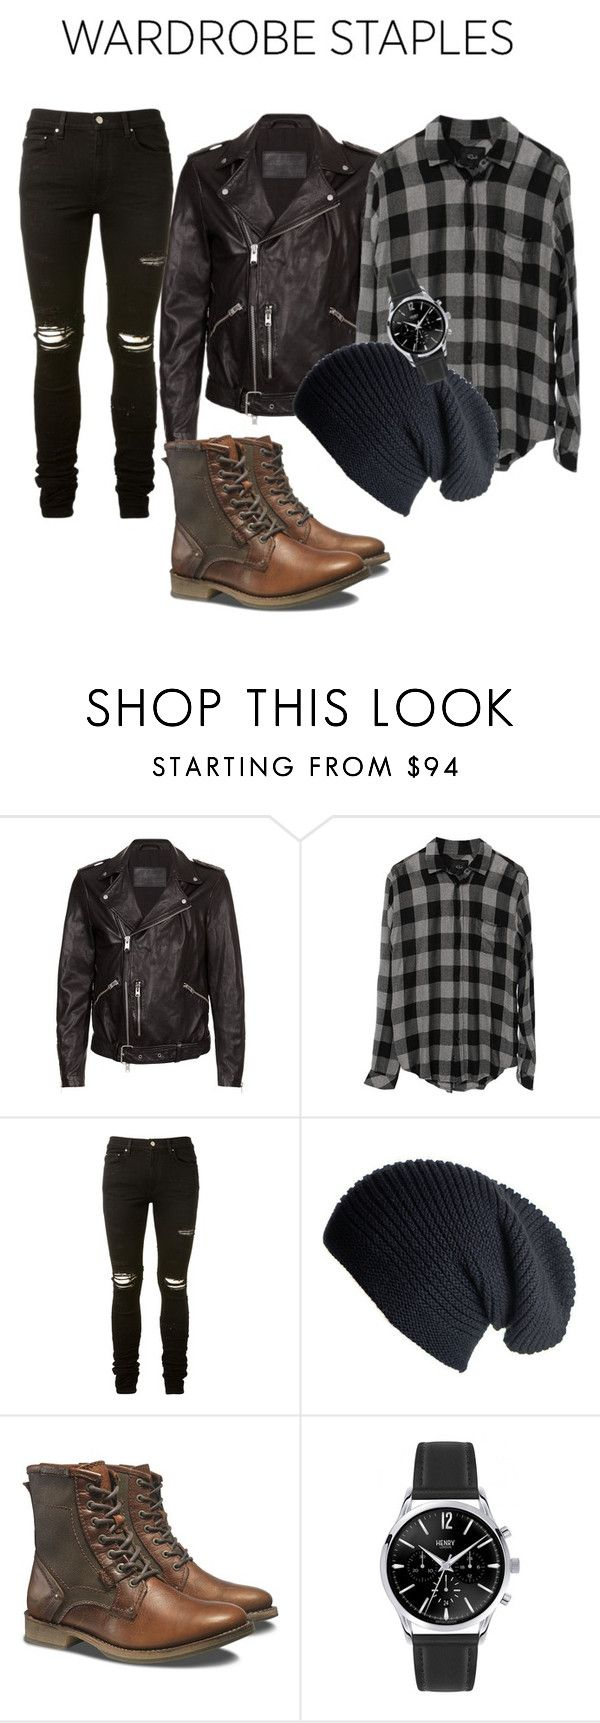 """Wardrobe staples"" by officialalmina ❤ liked on Polyvore featuring AllSaints, AMIRI, Black, Caterpillar, men's fashion, menswear, plaid and WardrobeStaples"